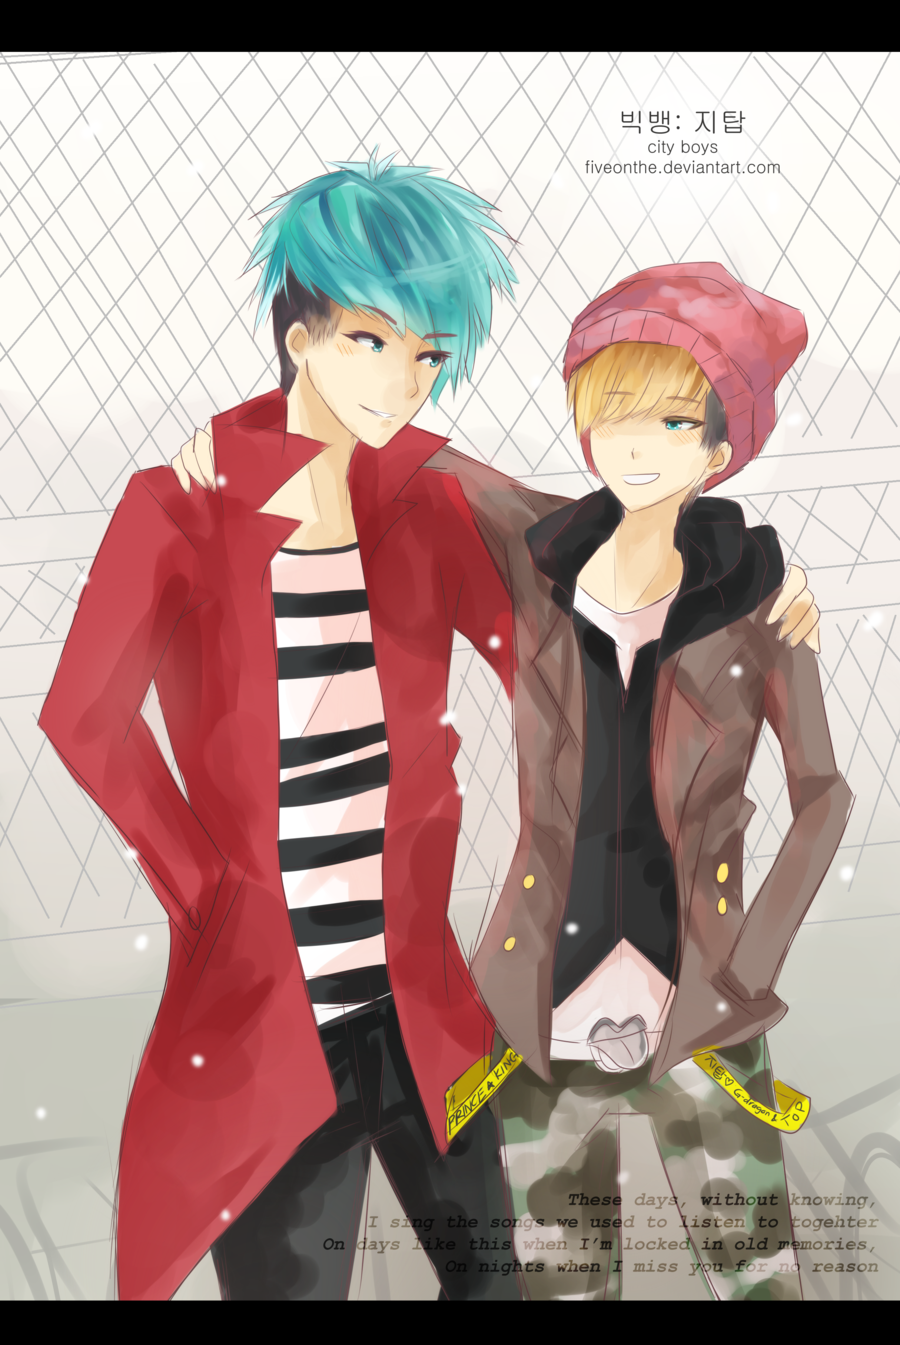 GTOP LOVE DUST By Fiveonthedeviantart On DeviantART